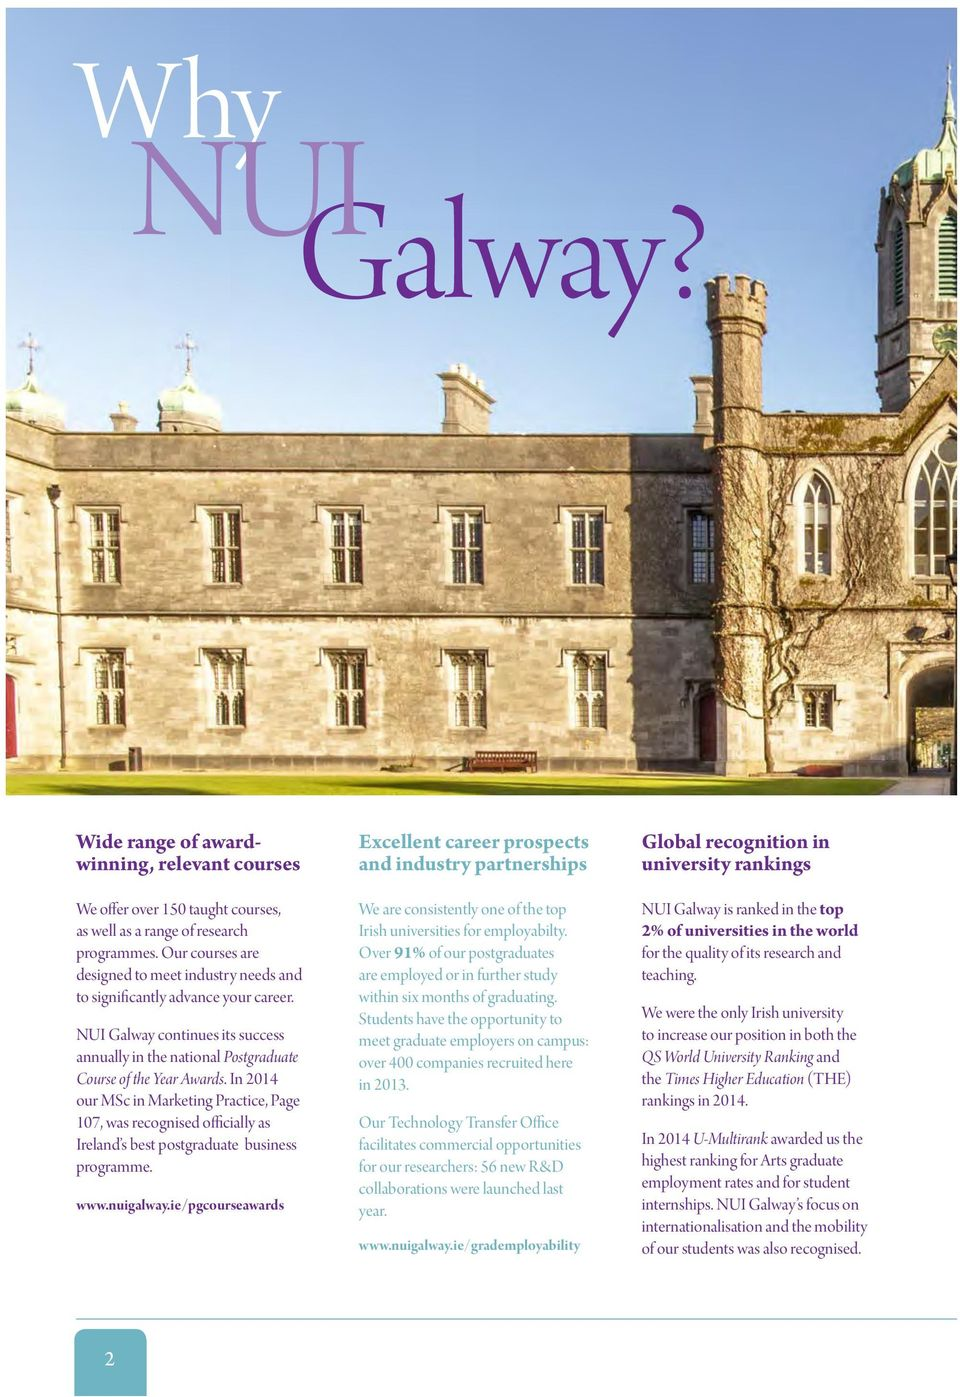 In 2014 our MSc in Marketing Practice, Page 107, was recognised officially as Ireland s best postgraduate business programme. www.nuigalway.